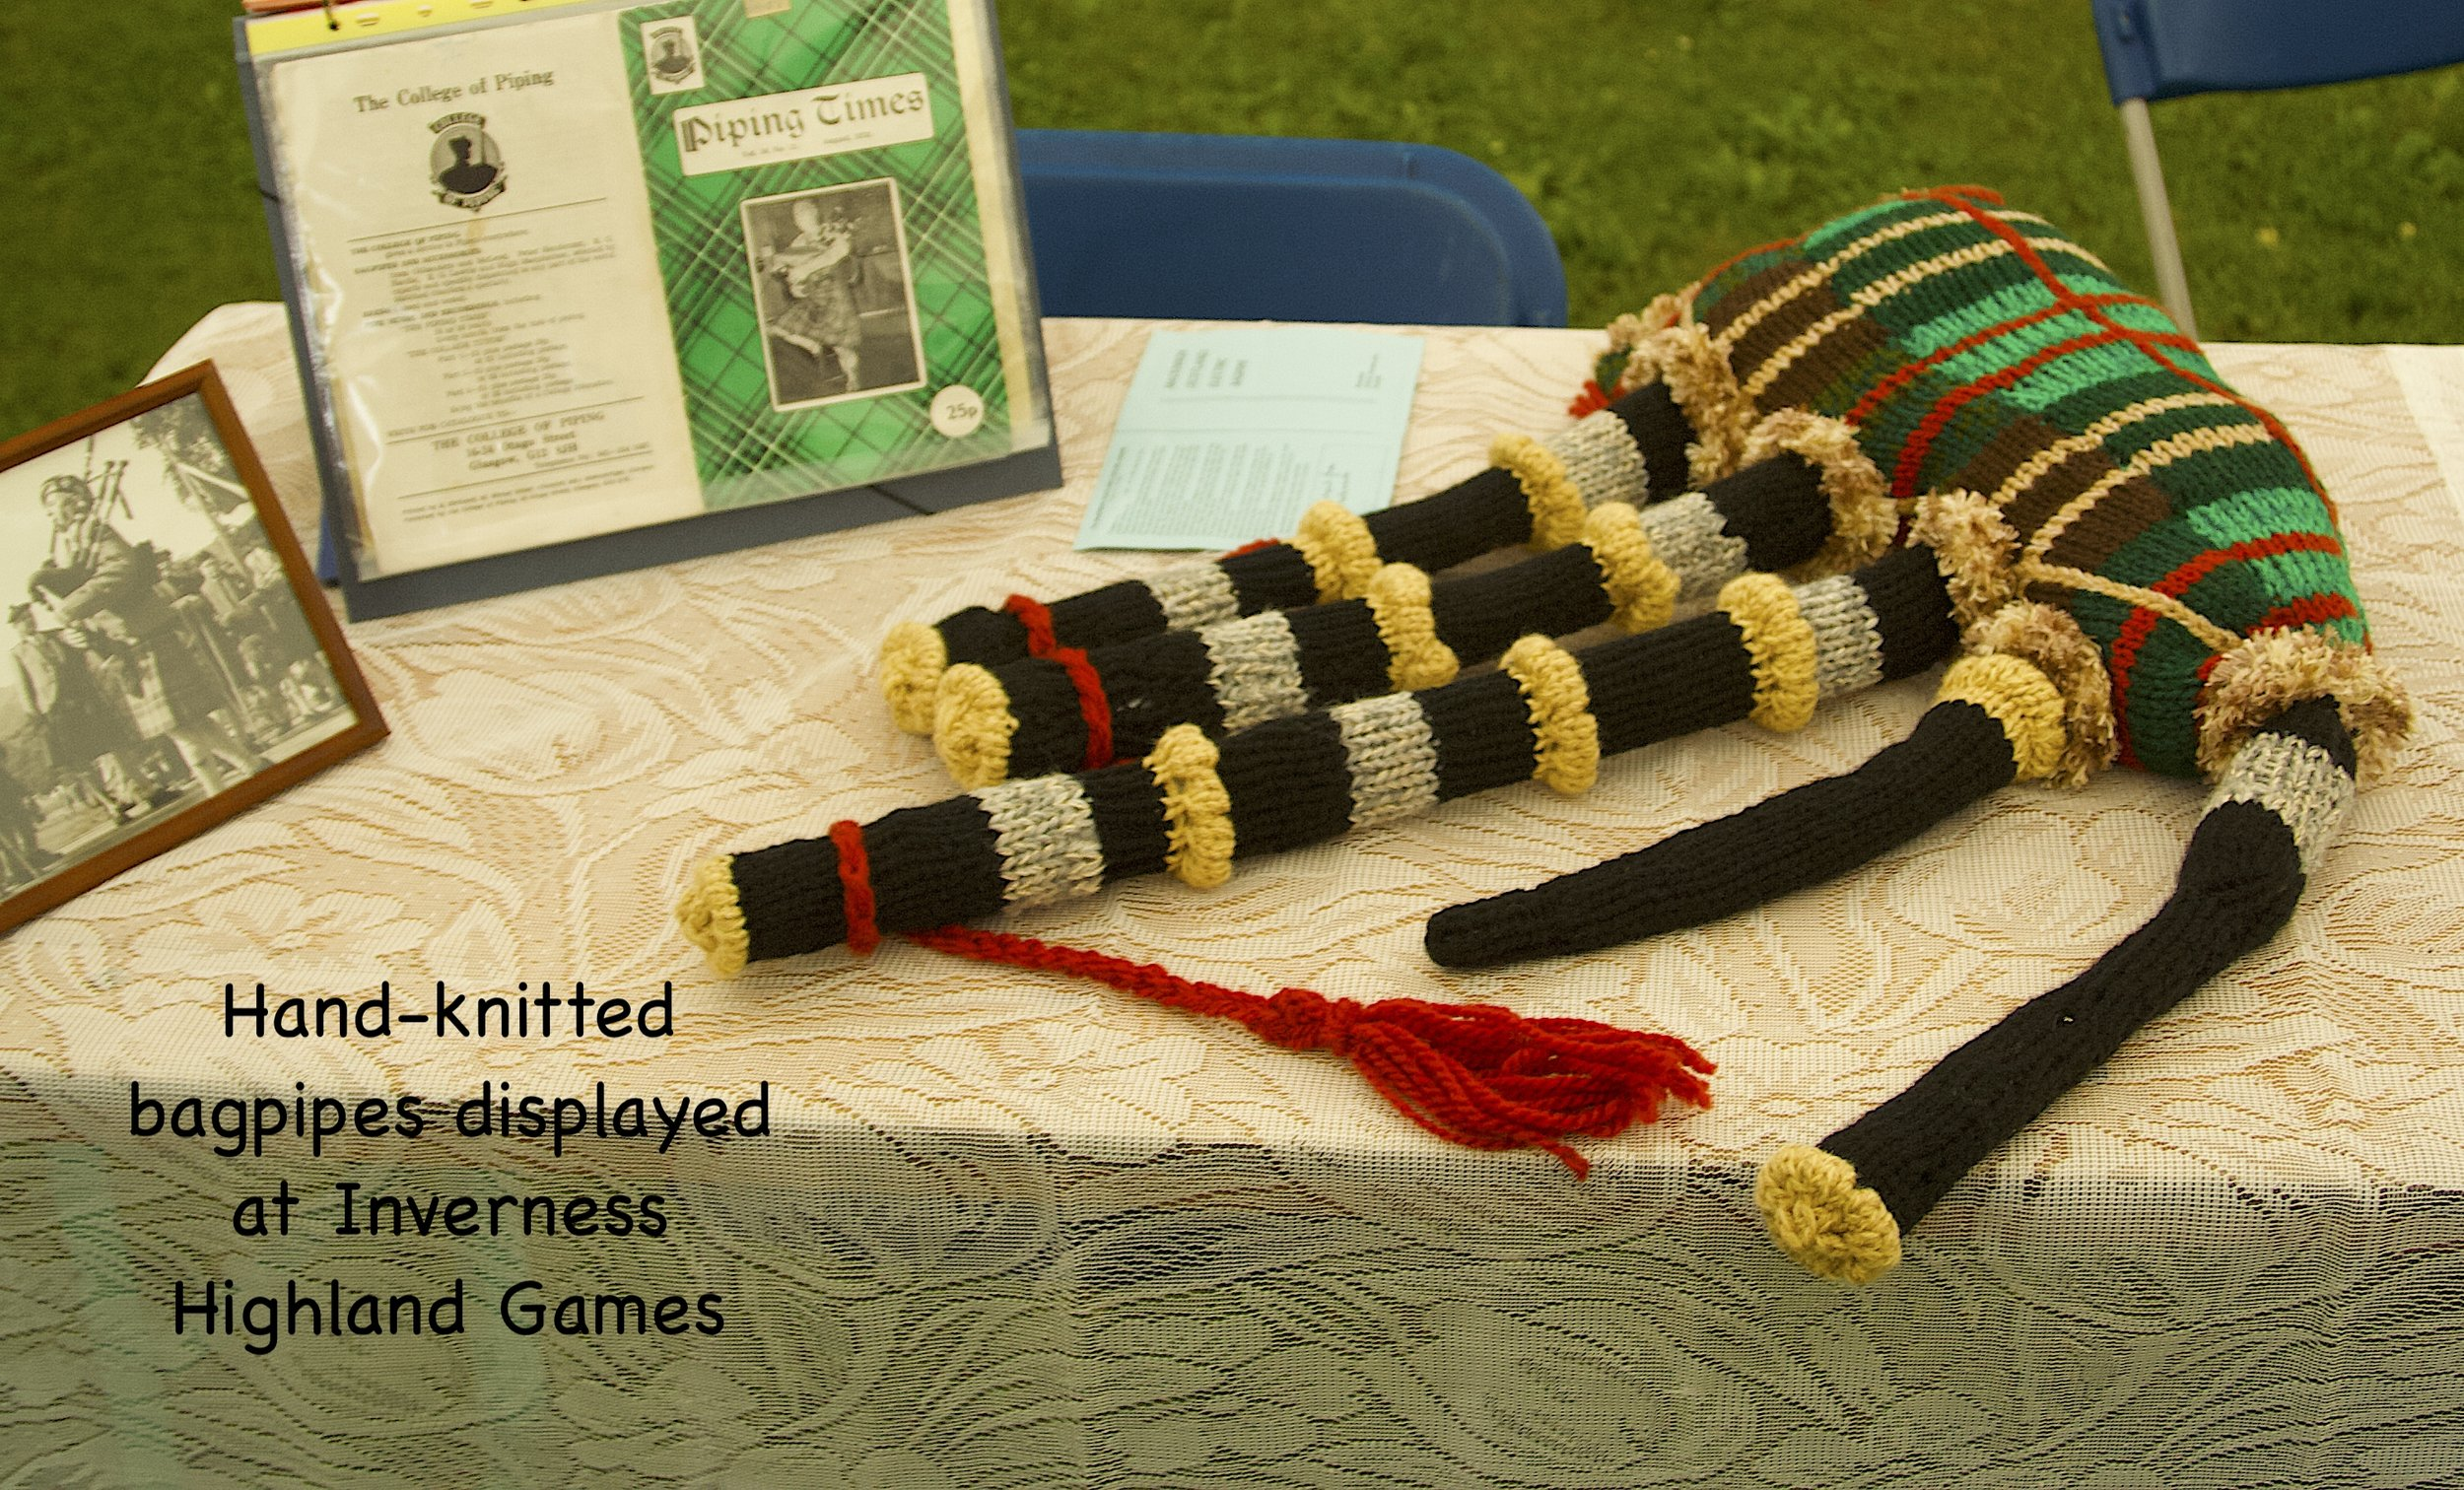 Hand-knitted bagppes at Inverness Highland Games.jpg